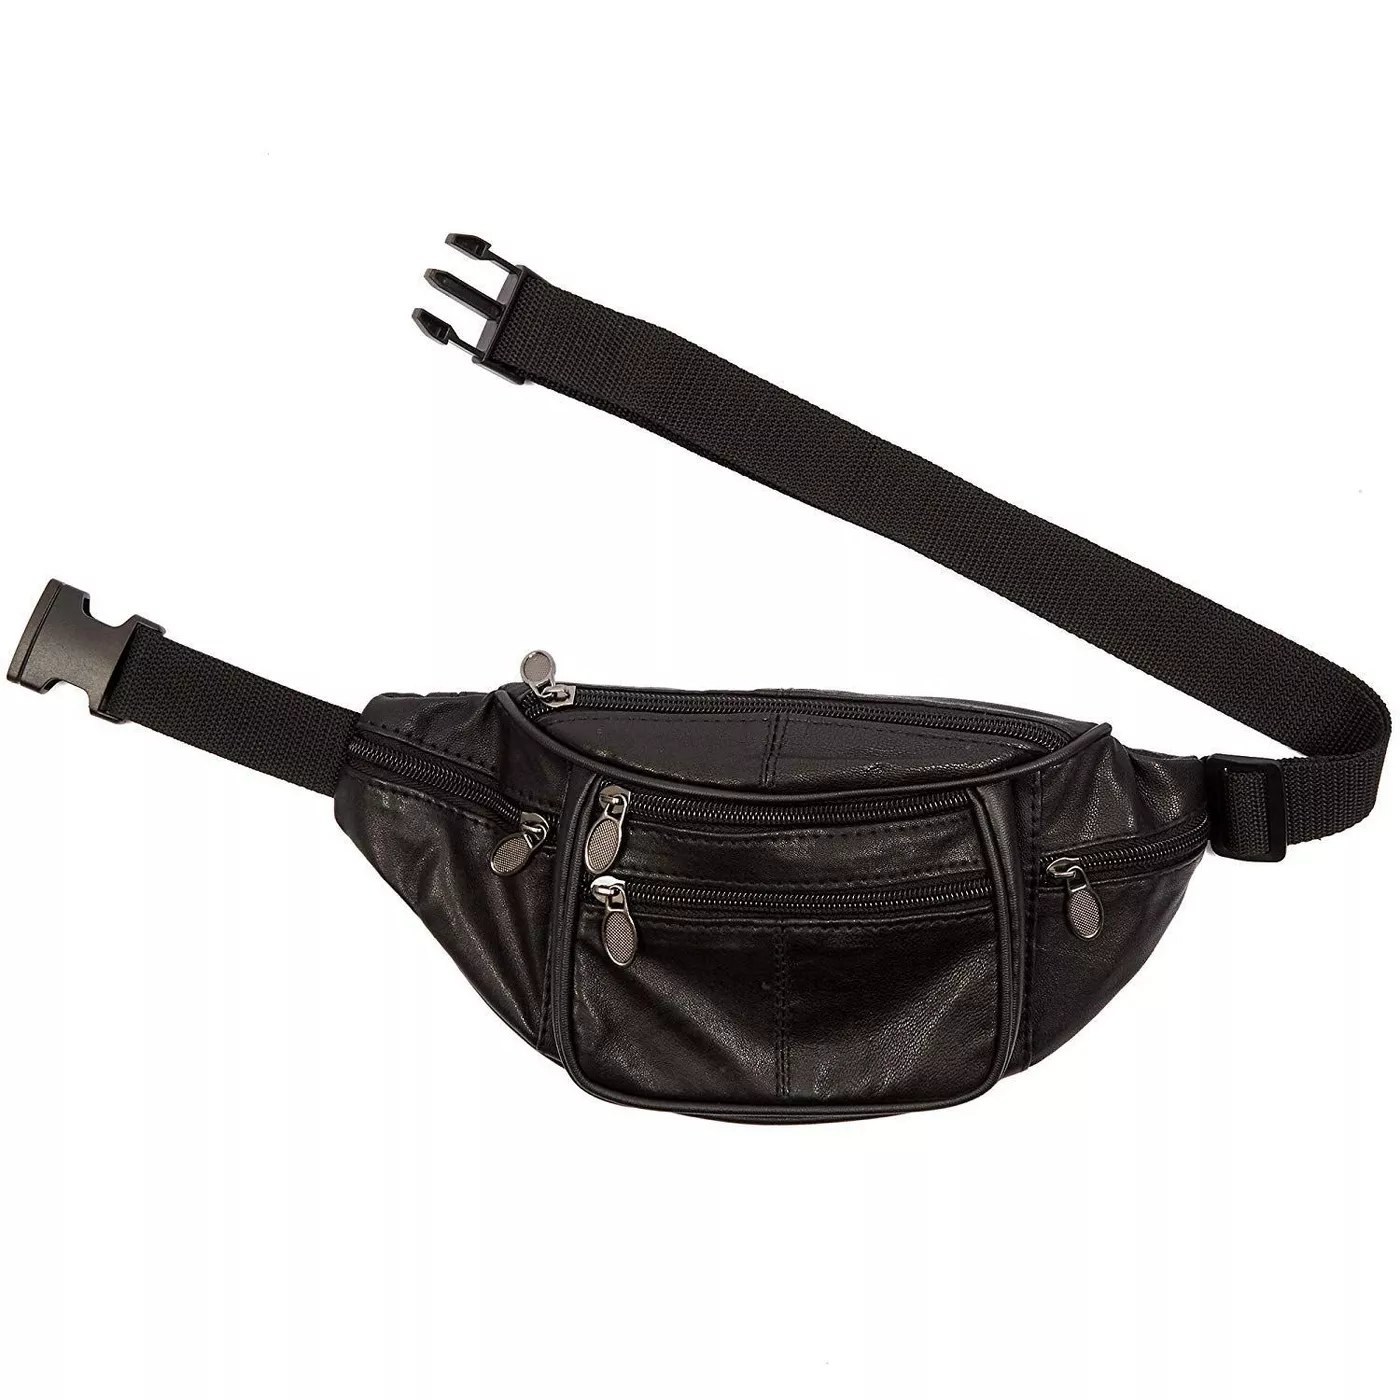 The leather fanny pack